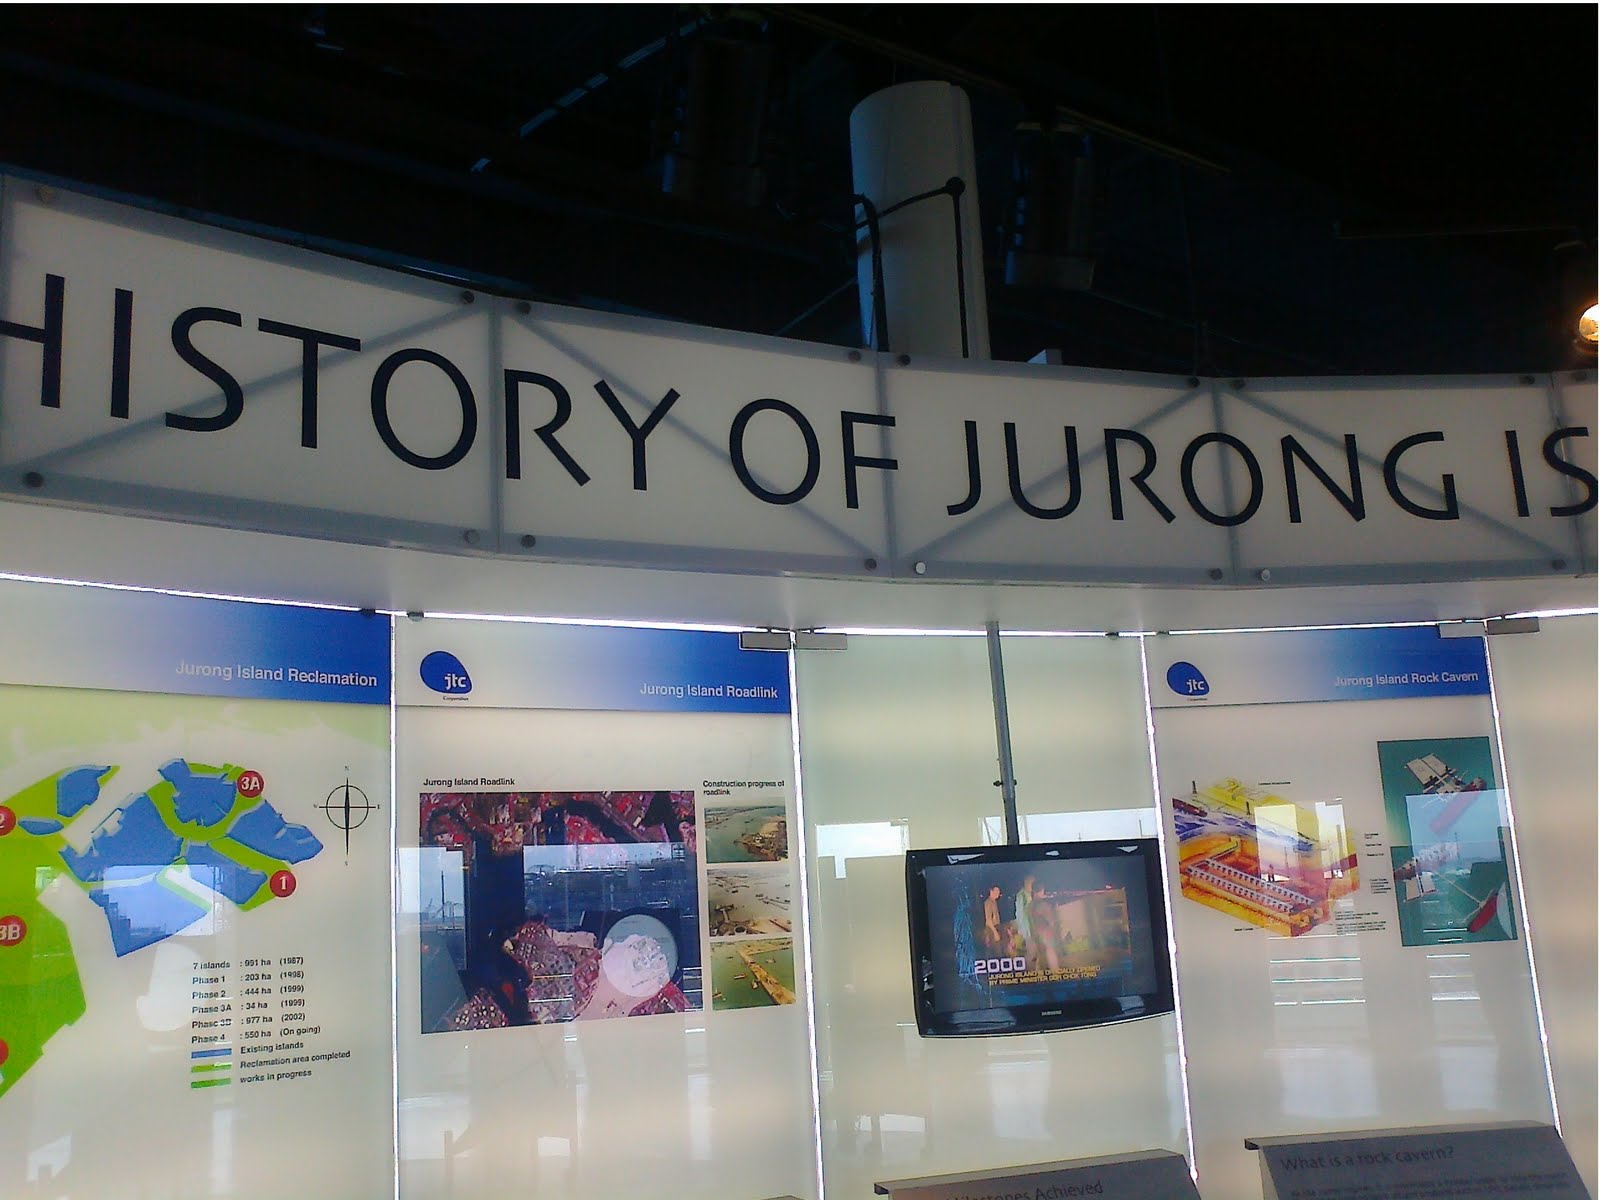 Singapore Local Tour: Places I have been - Jurong Island Chem Gallery